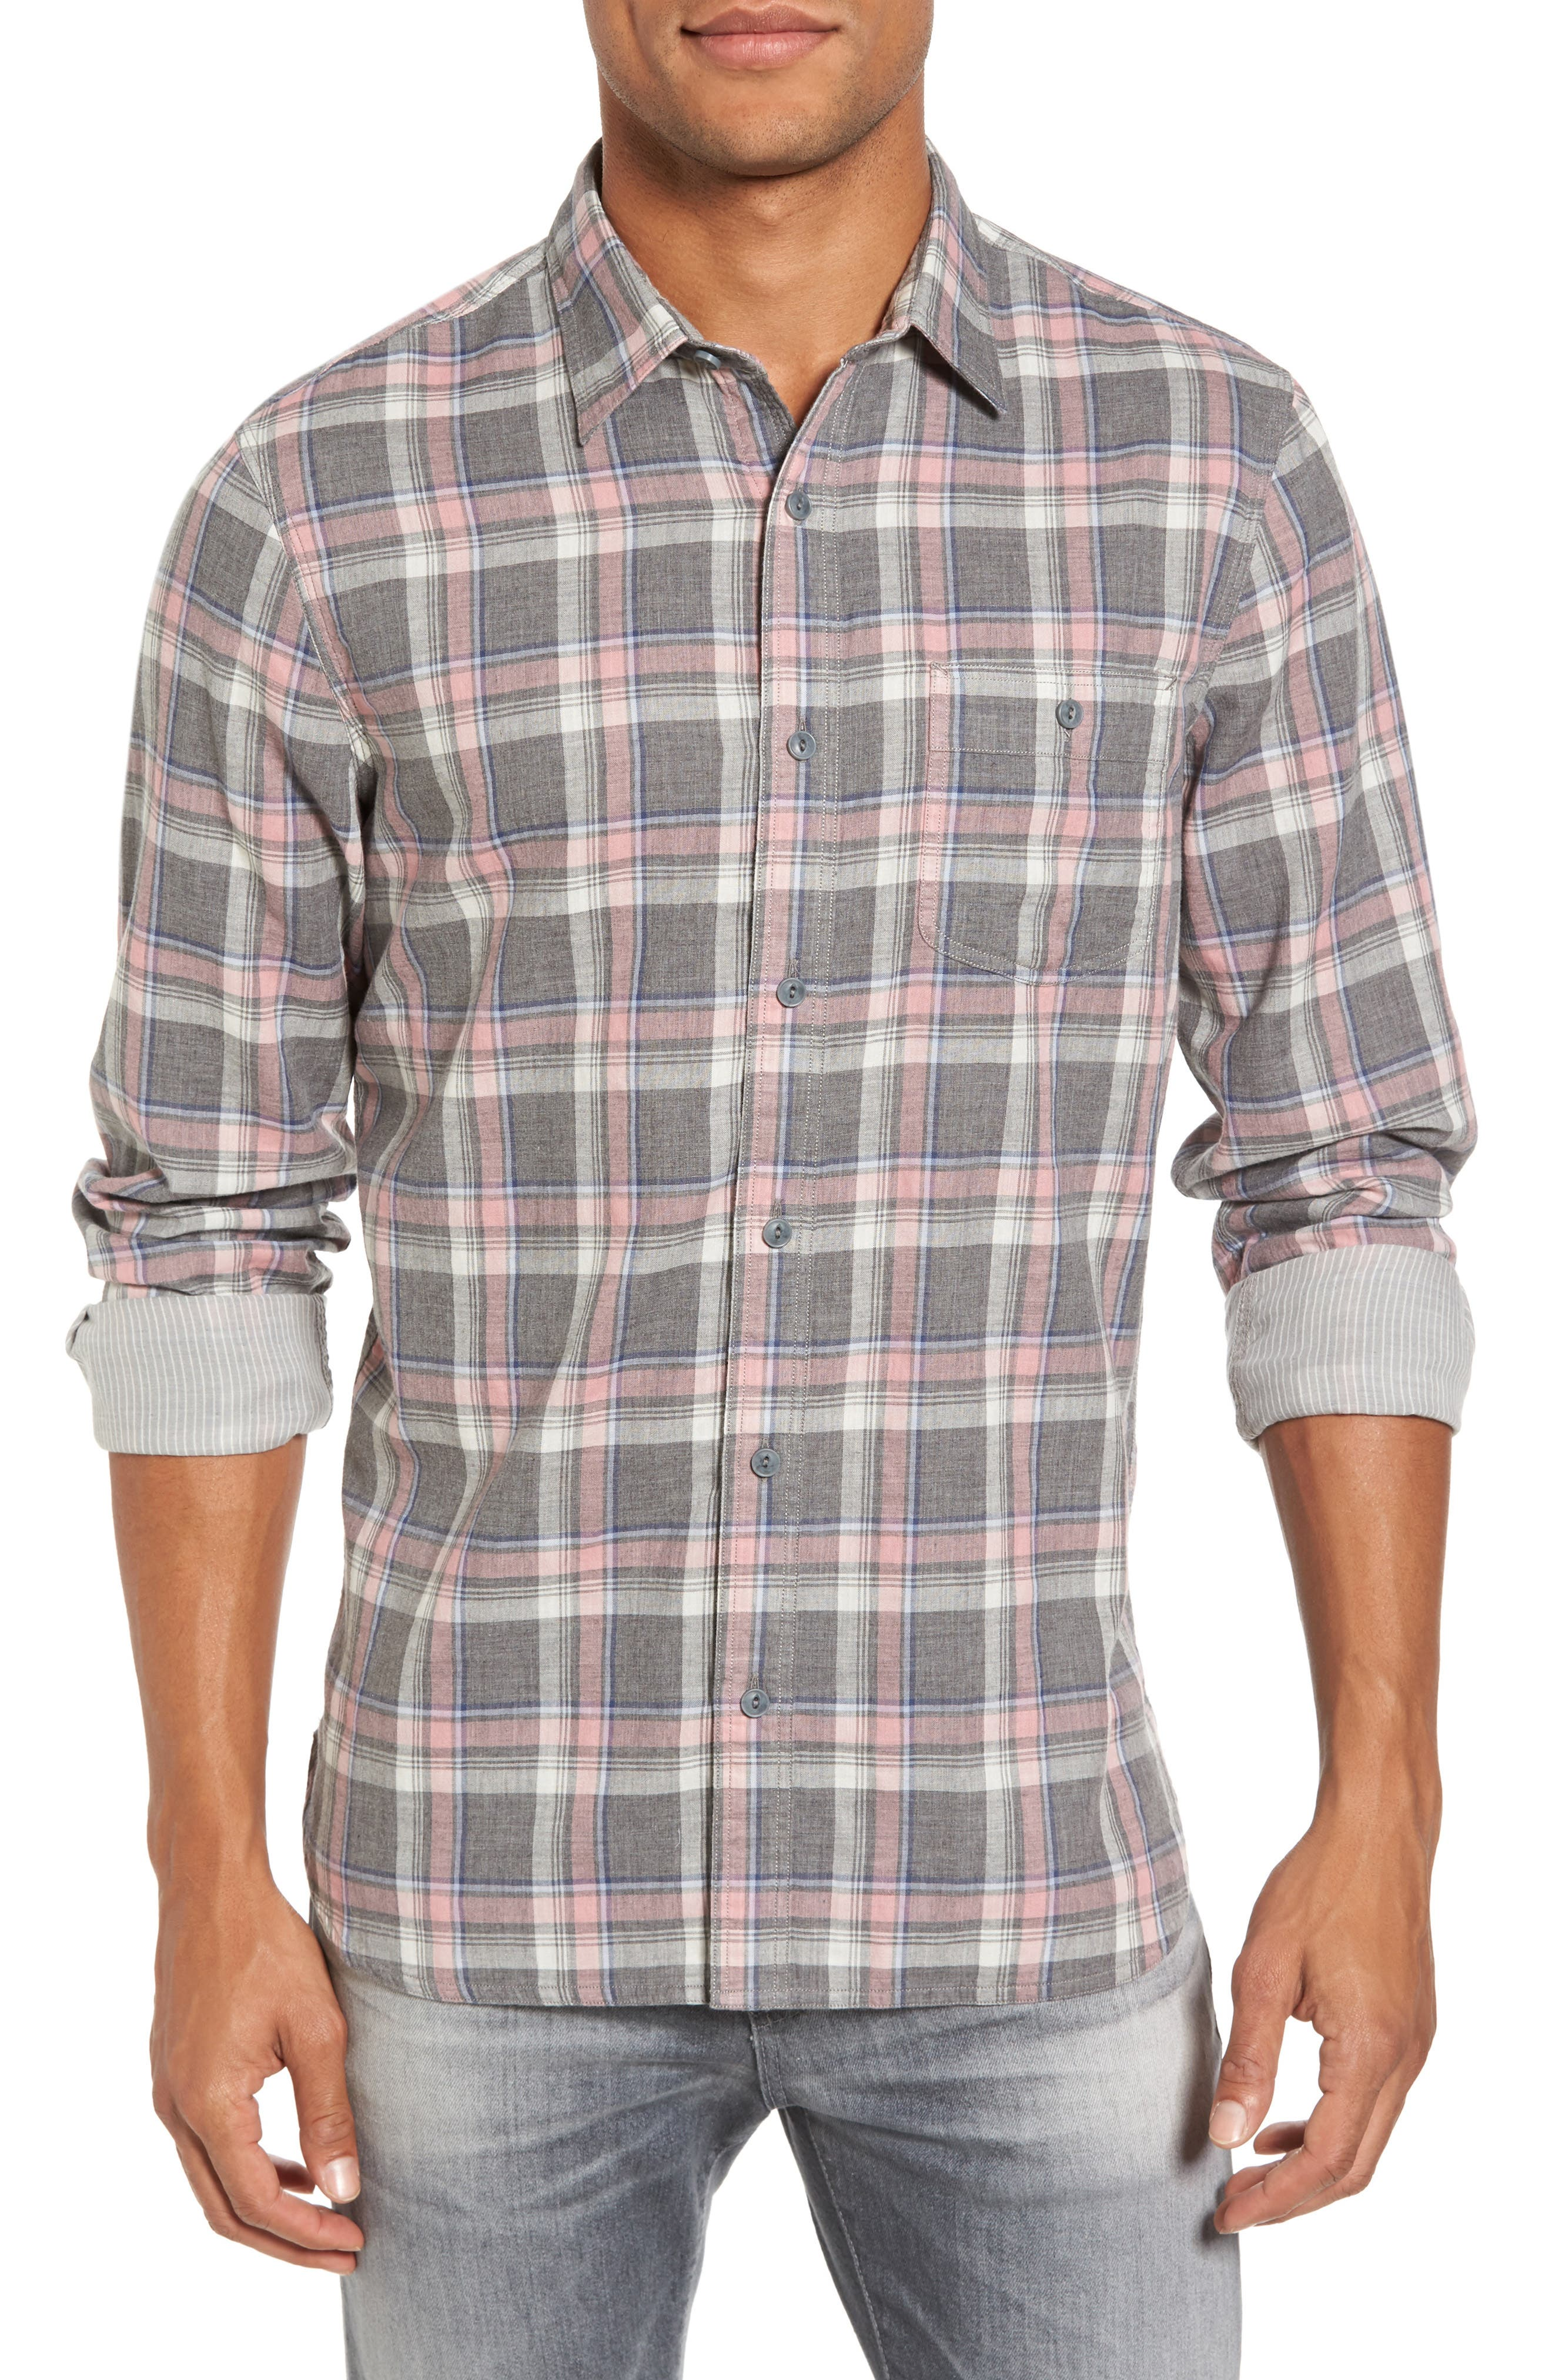 Trim Fit Utility Duofold Sport Shirt,                         Main,                         color, Grey Paloma Pink Plaid Duofold